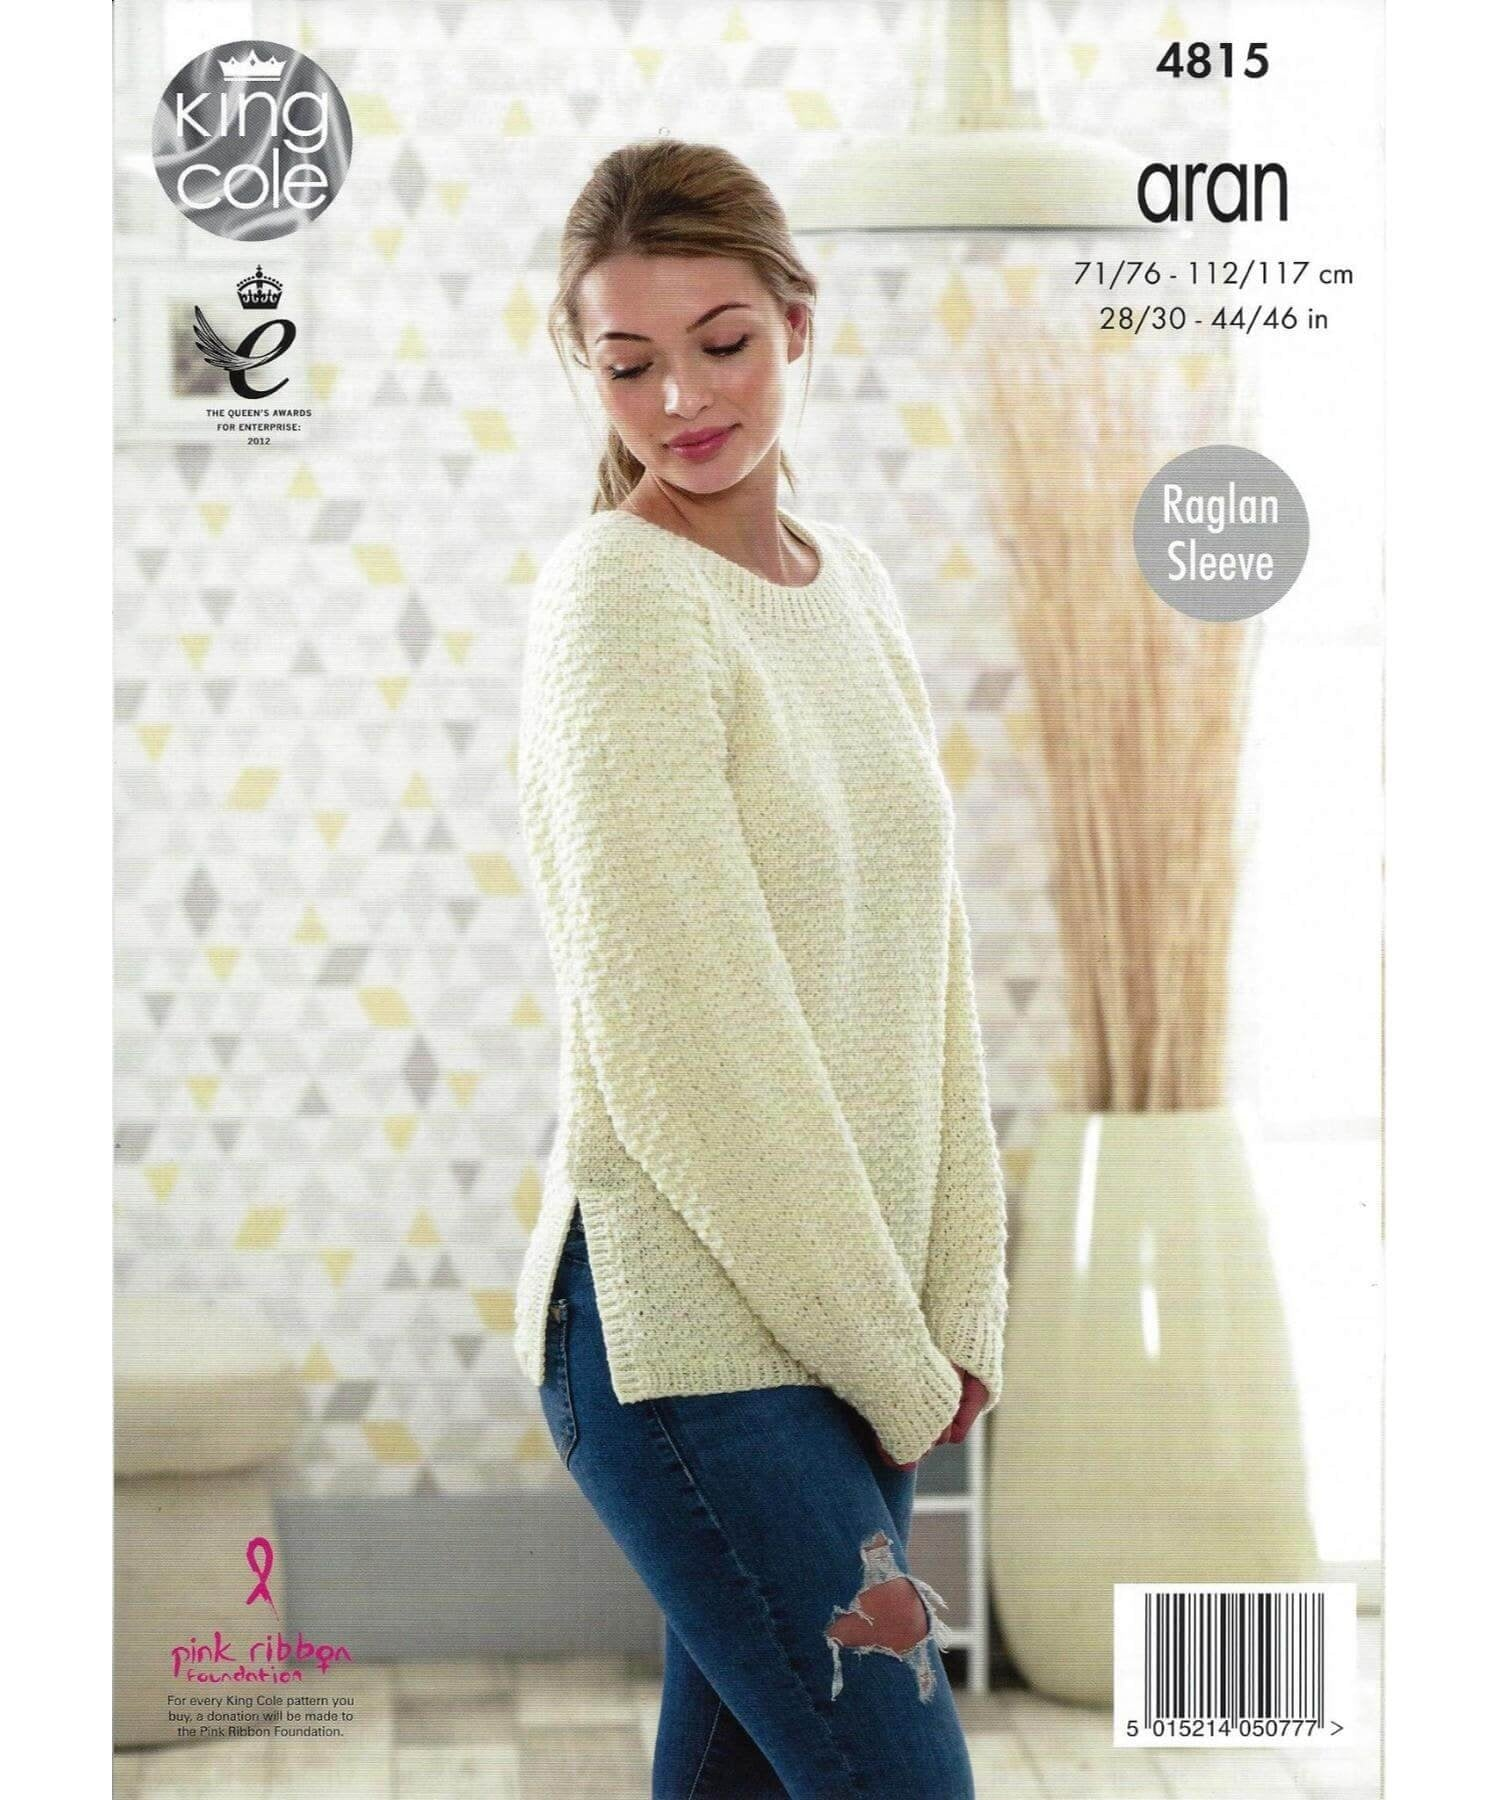 King Cole Aran Pattern 4815 - Irish Crafts